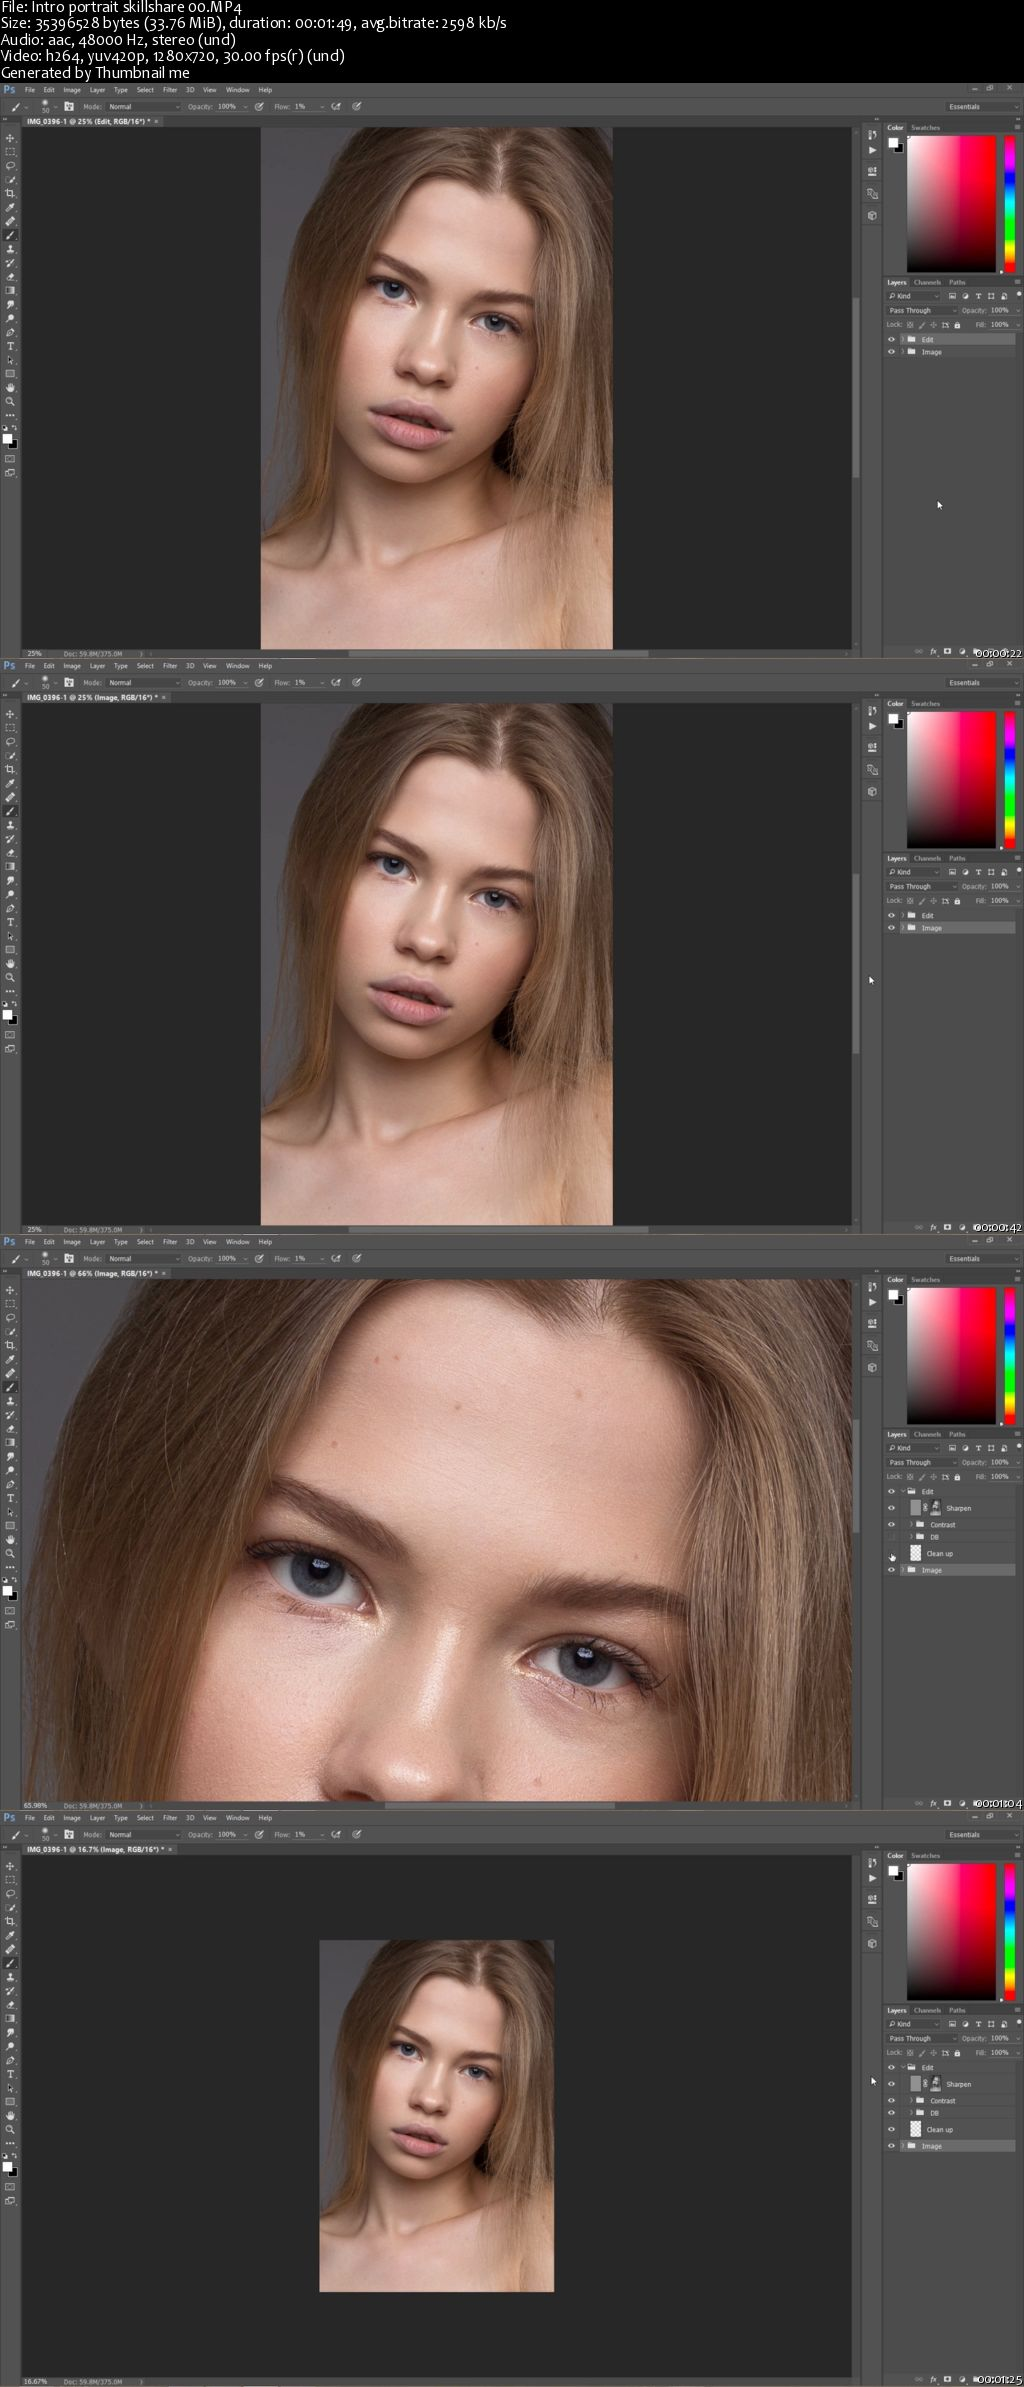 Professional Portrait Retouching - Photoshop CC